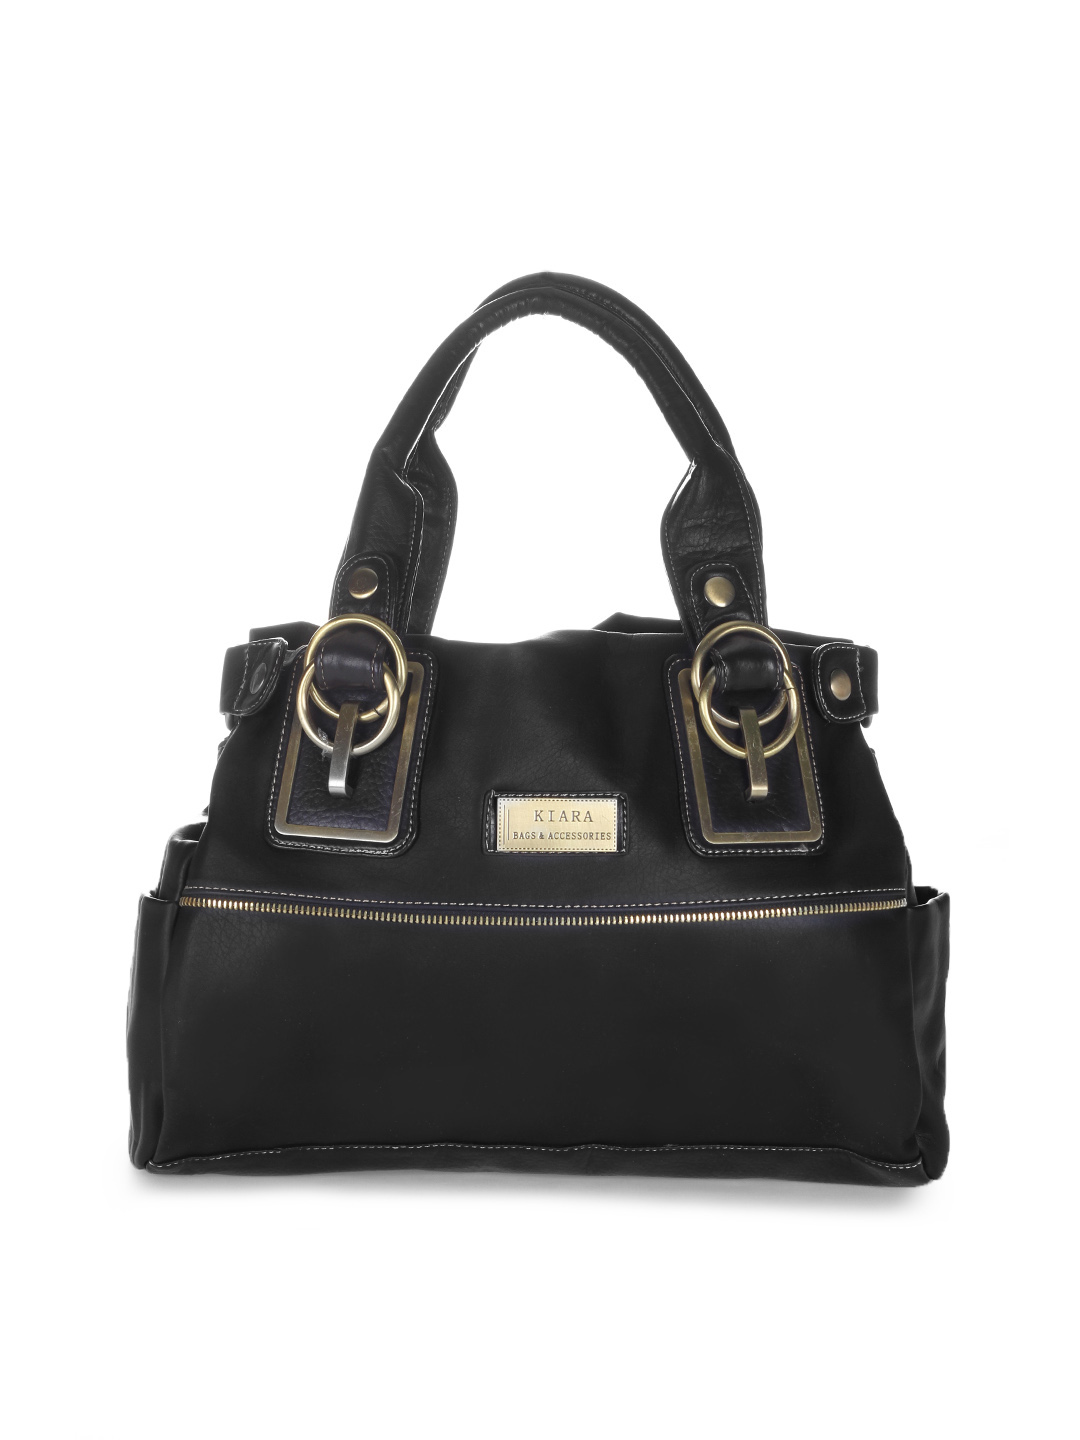 Kiara Women Black Handbag